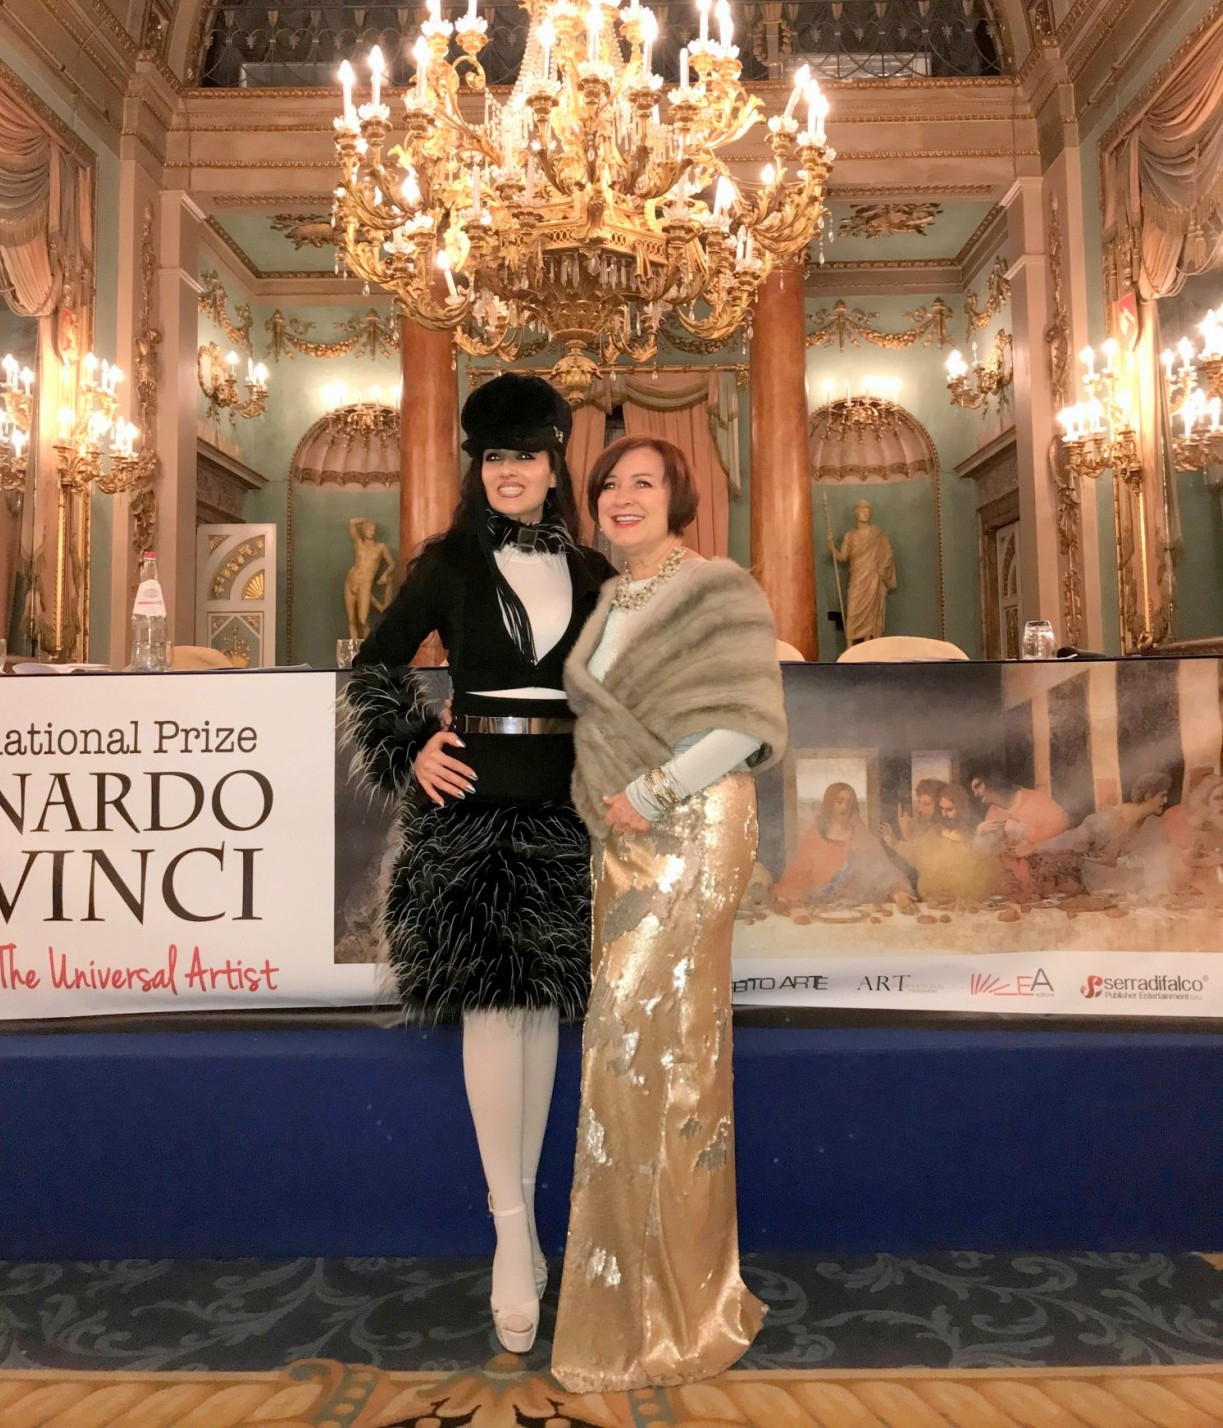 International Prize - Leonardo Da Vinci - The Universal Artist